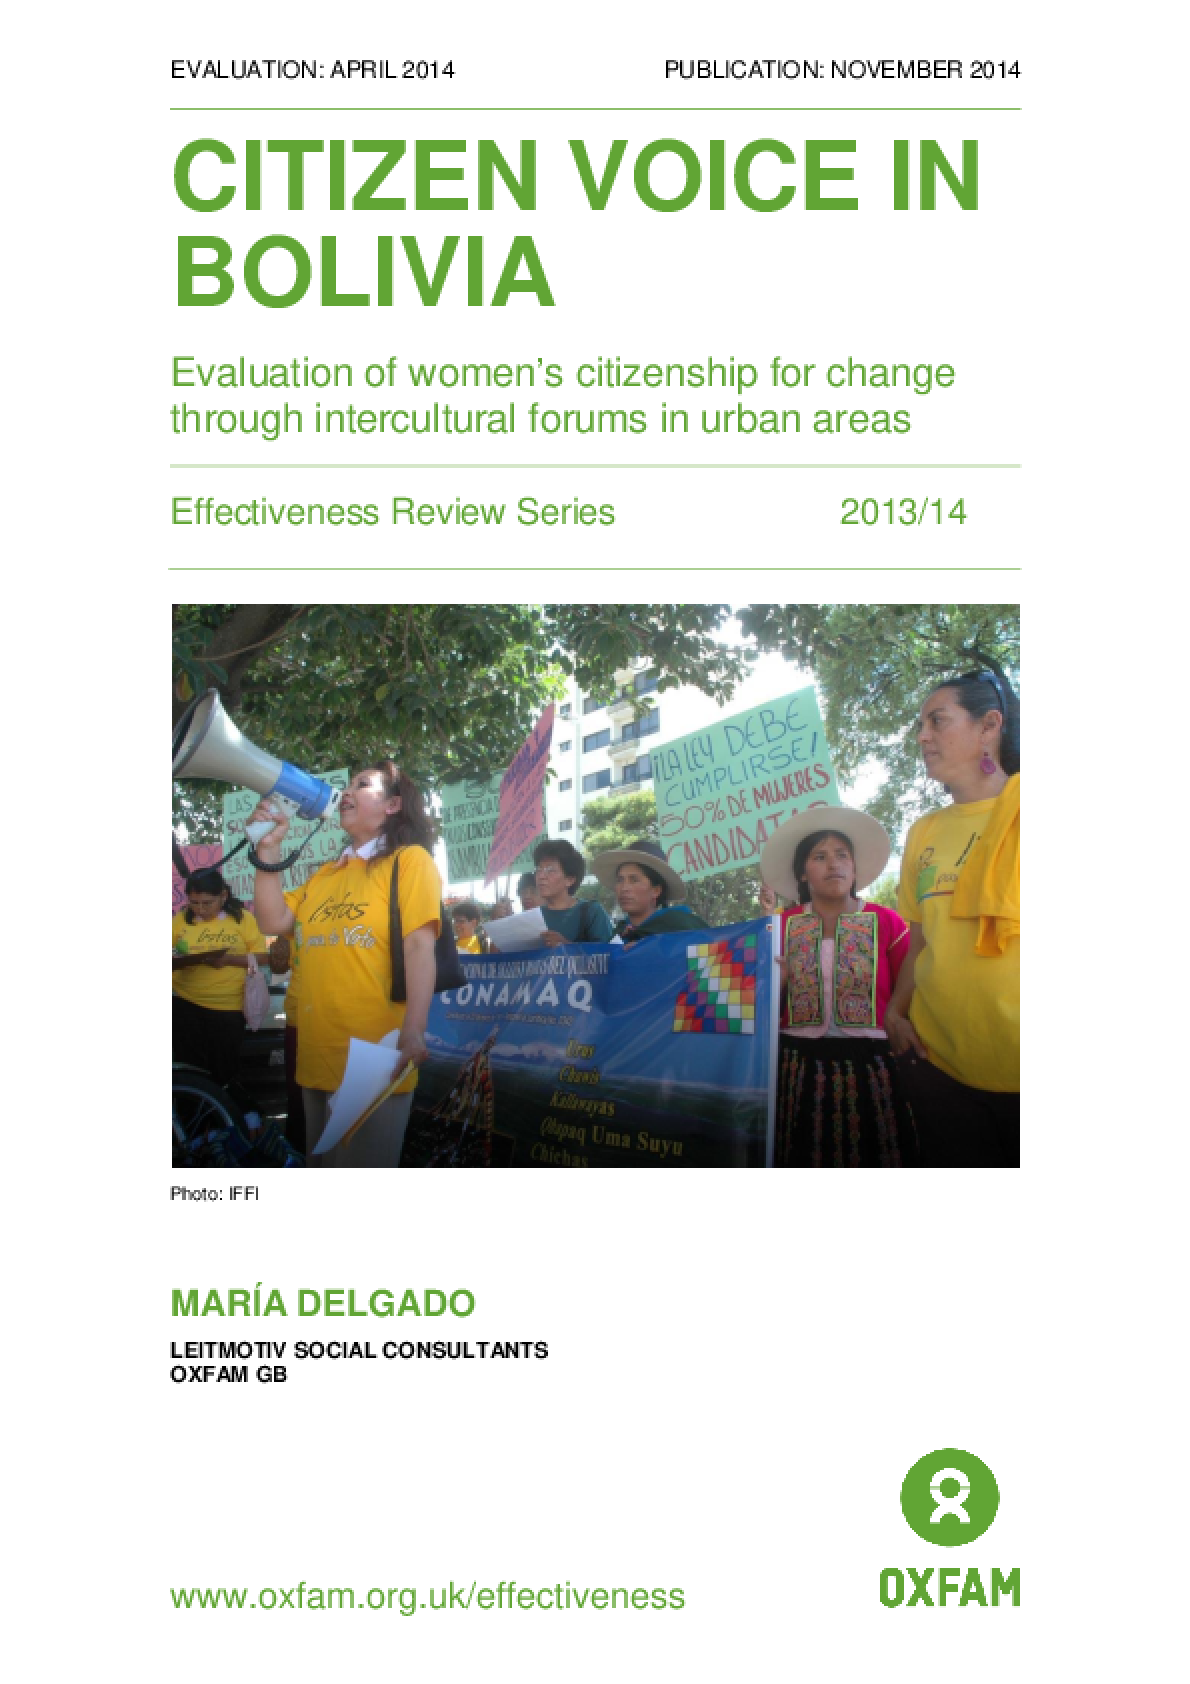 Citizen Voice in Bolivia: Evaluation of women's citizenship for change through intercultural forums in urban areas